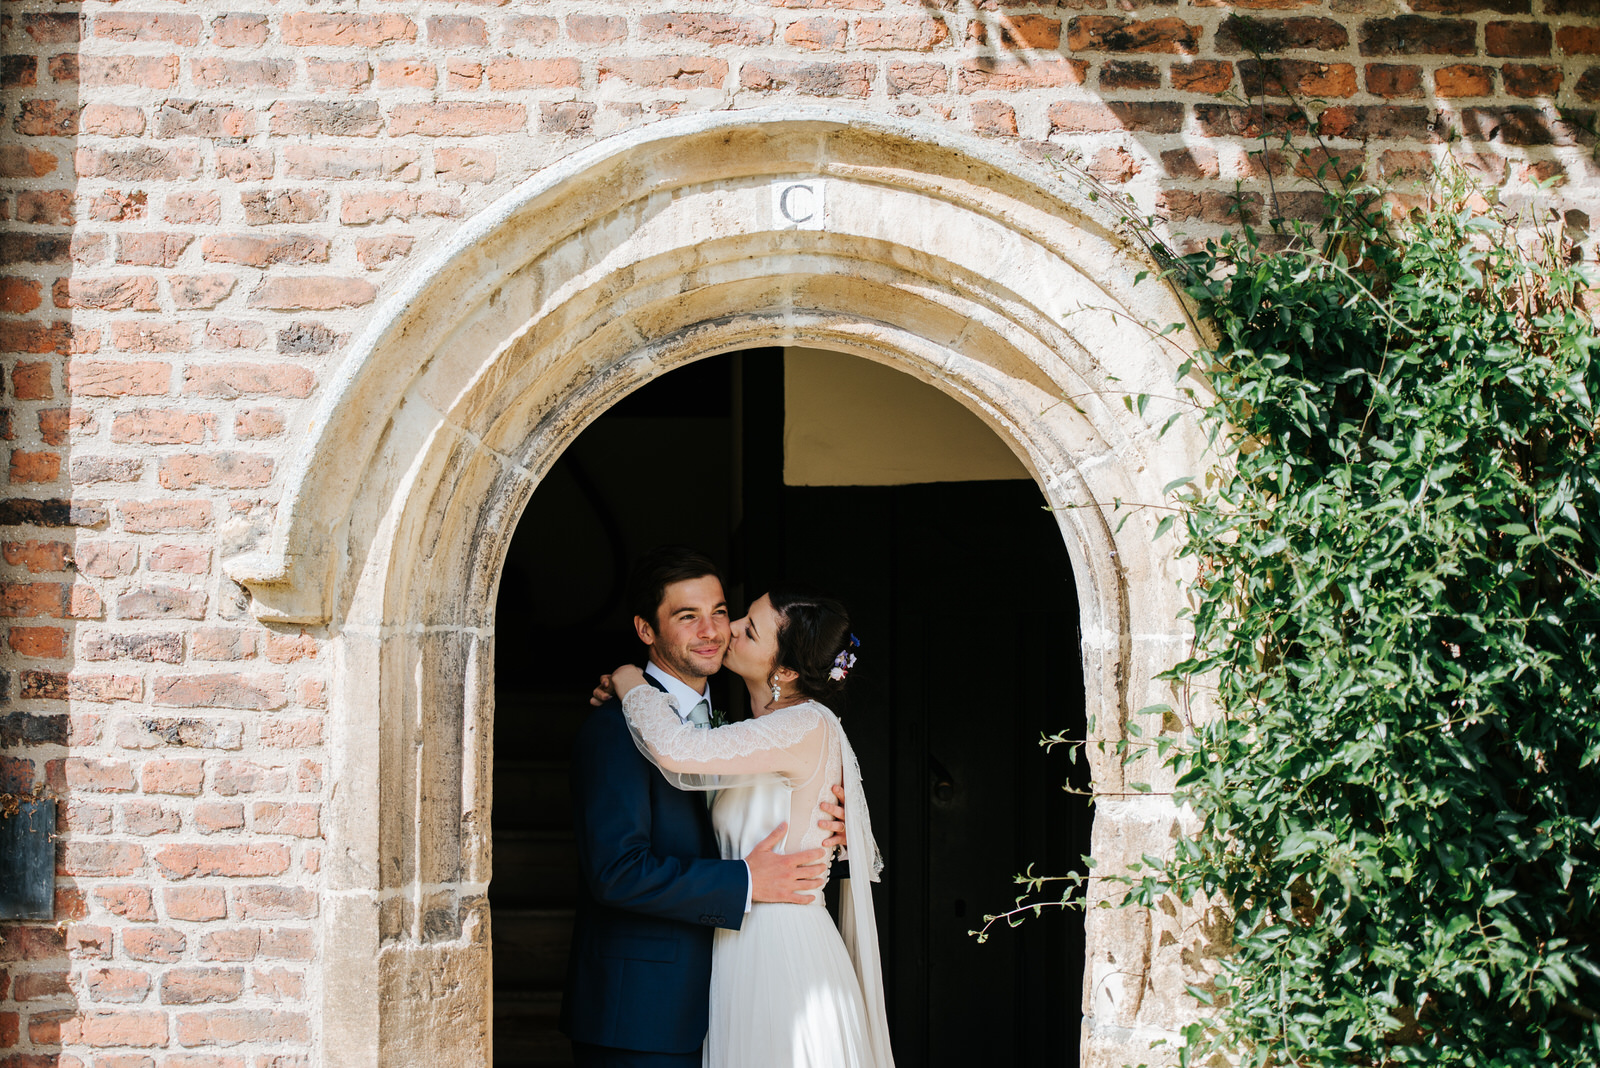 Bride and groom embrace each other romantically during wedding c